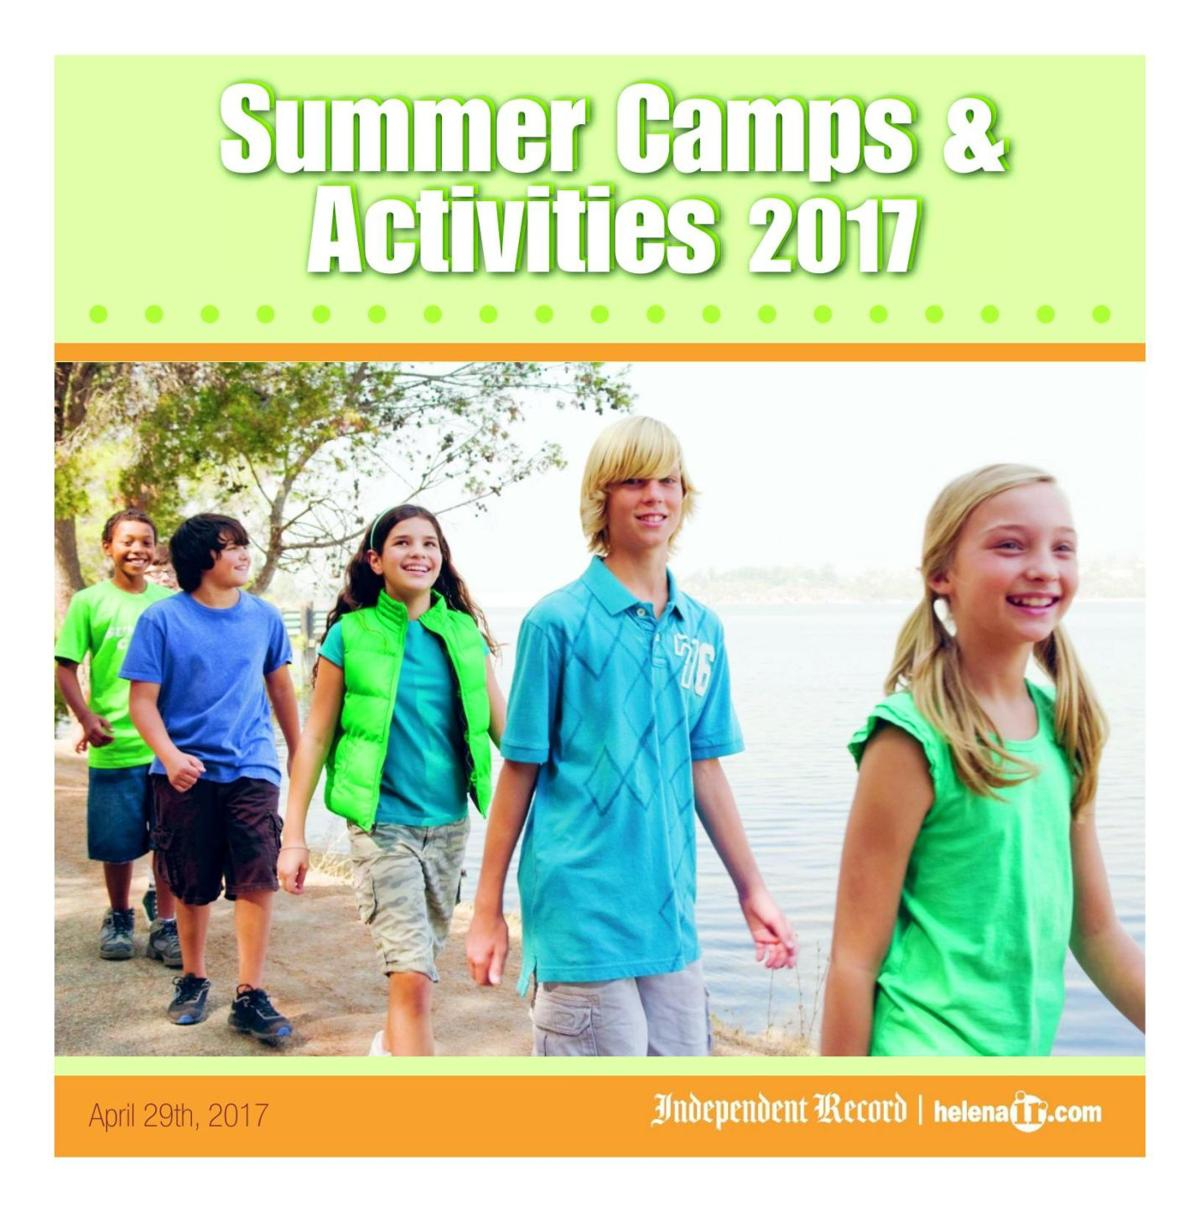 Summer Camps Guide 2017